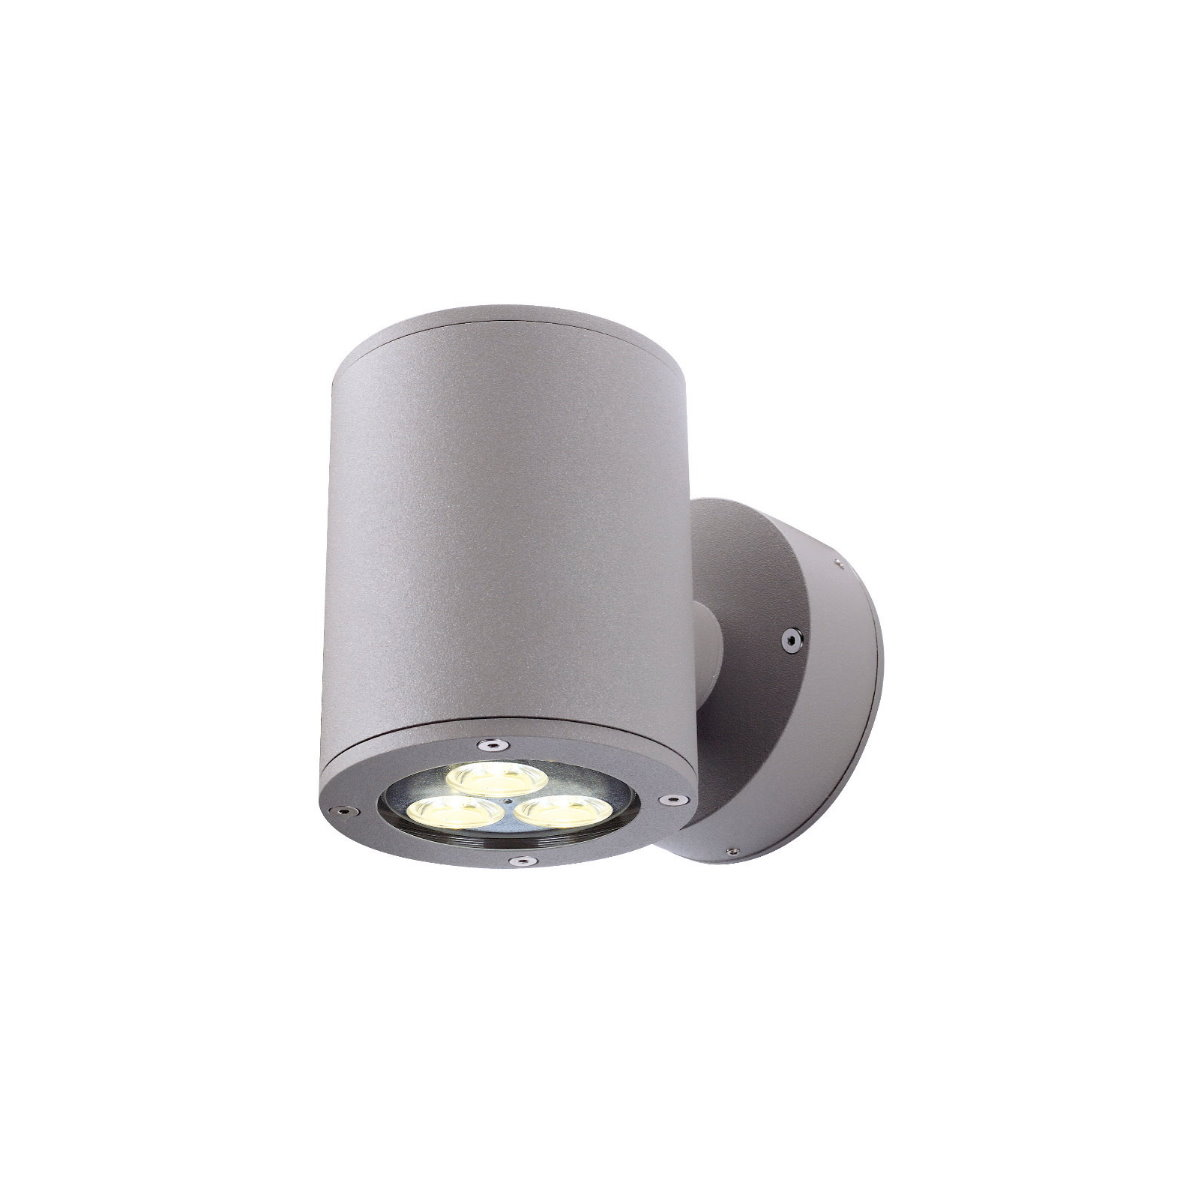 slv sitra gx53 aussenleuchte aussenstrahler aussenlampe. Black Bedroom Furniture Sets. Home Design Ideas